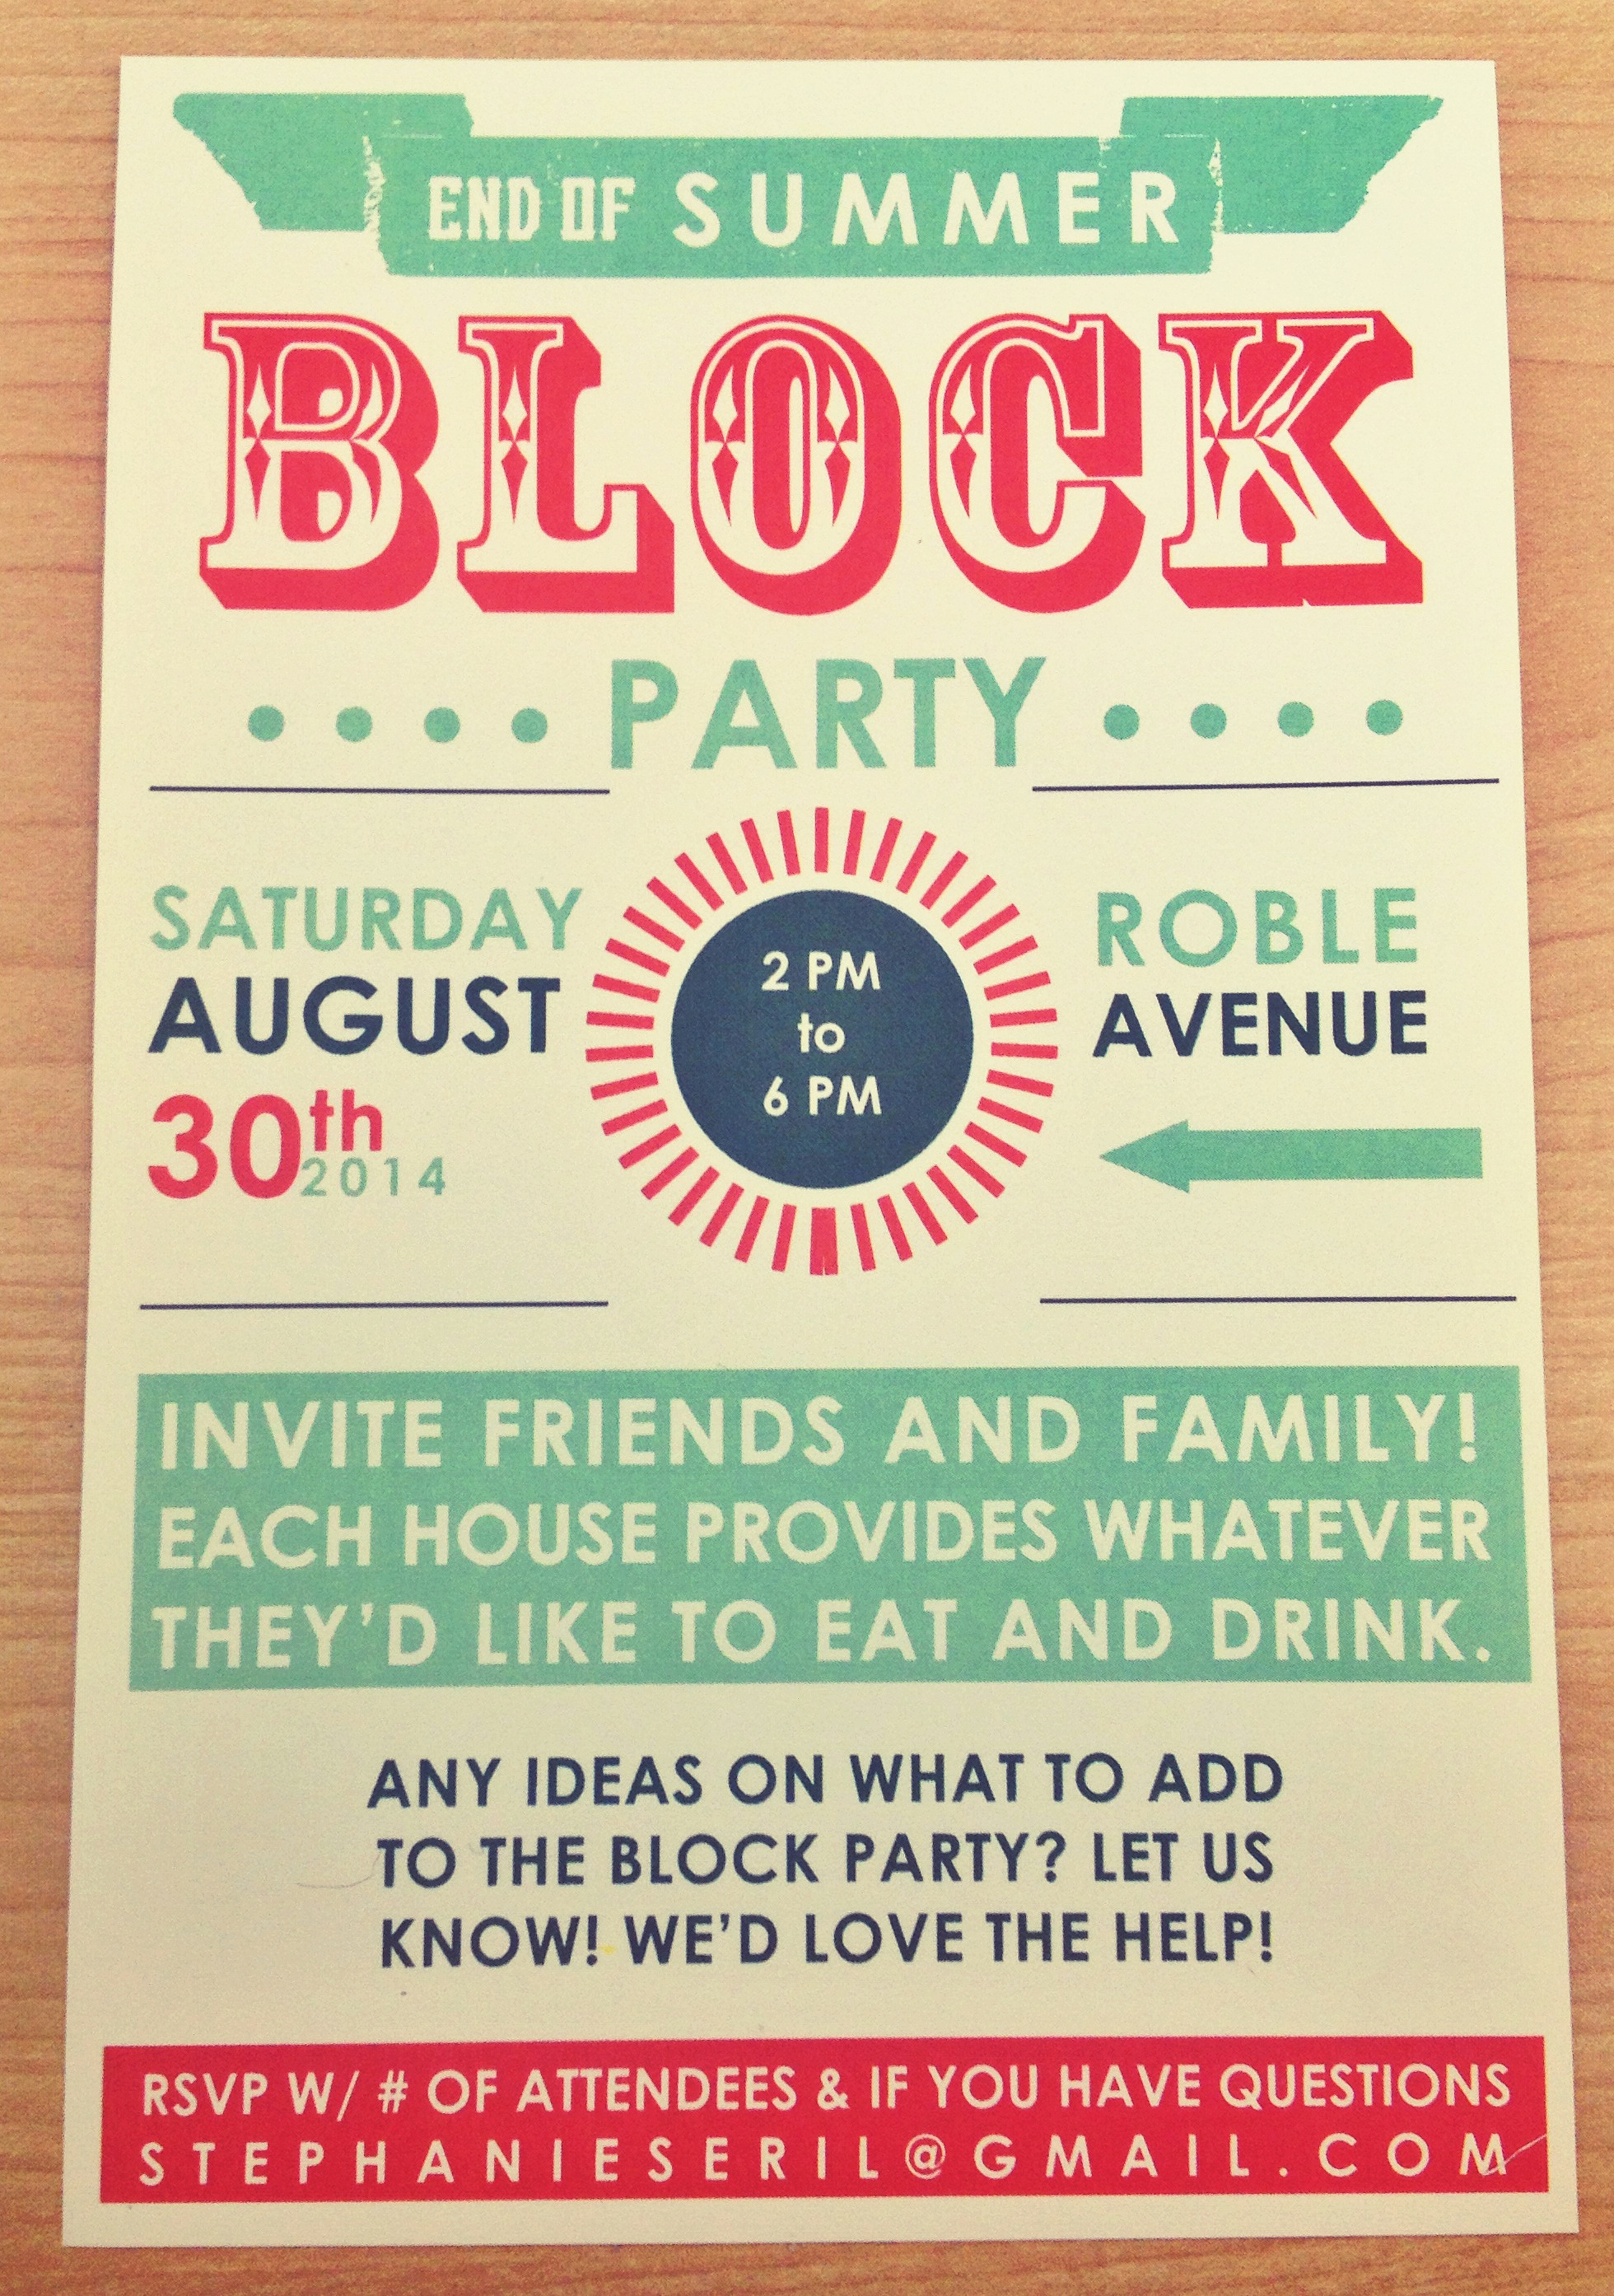 End Of Summer Party Invitation Awesome End Of Summer Block Party